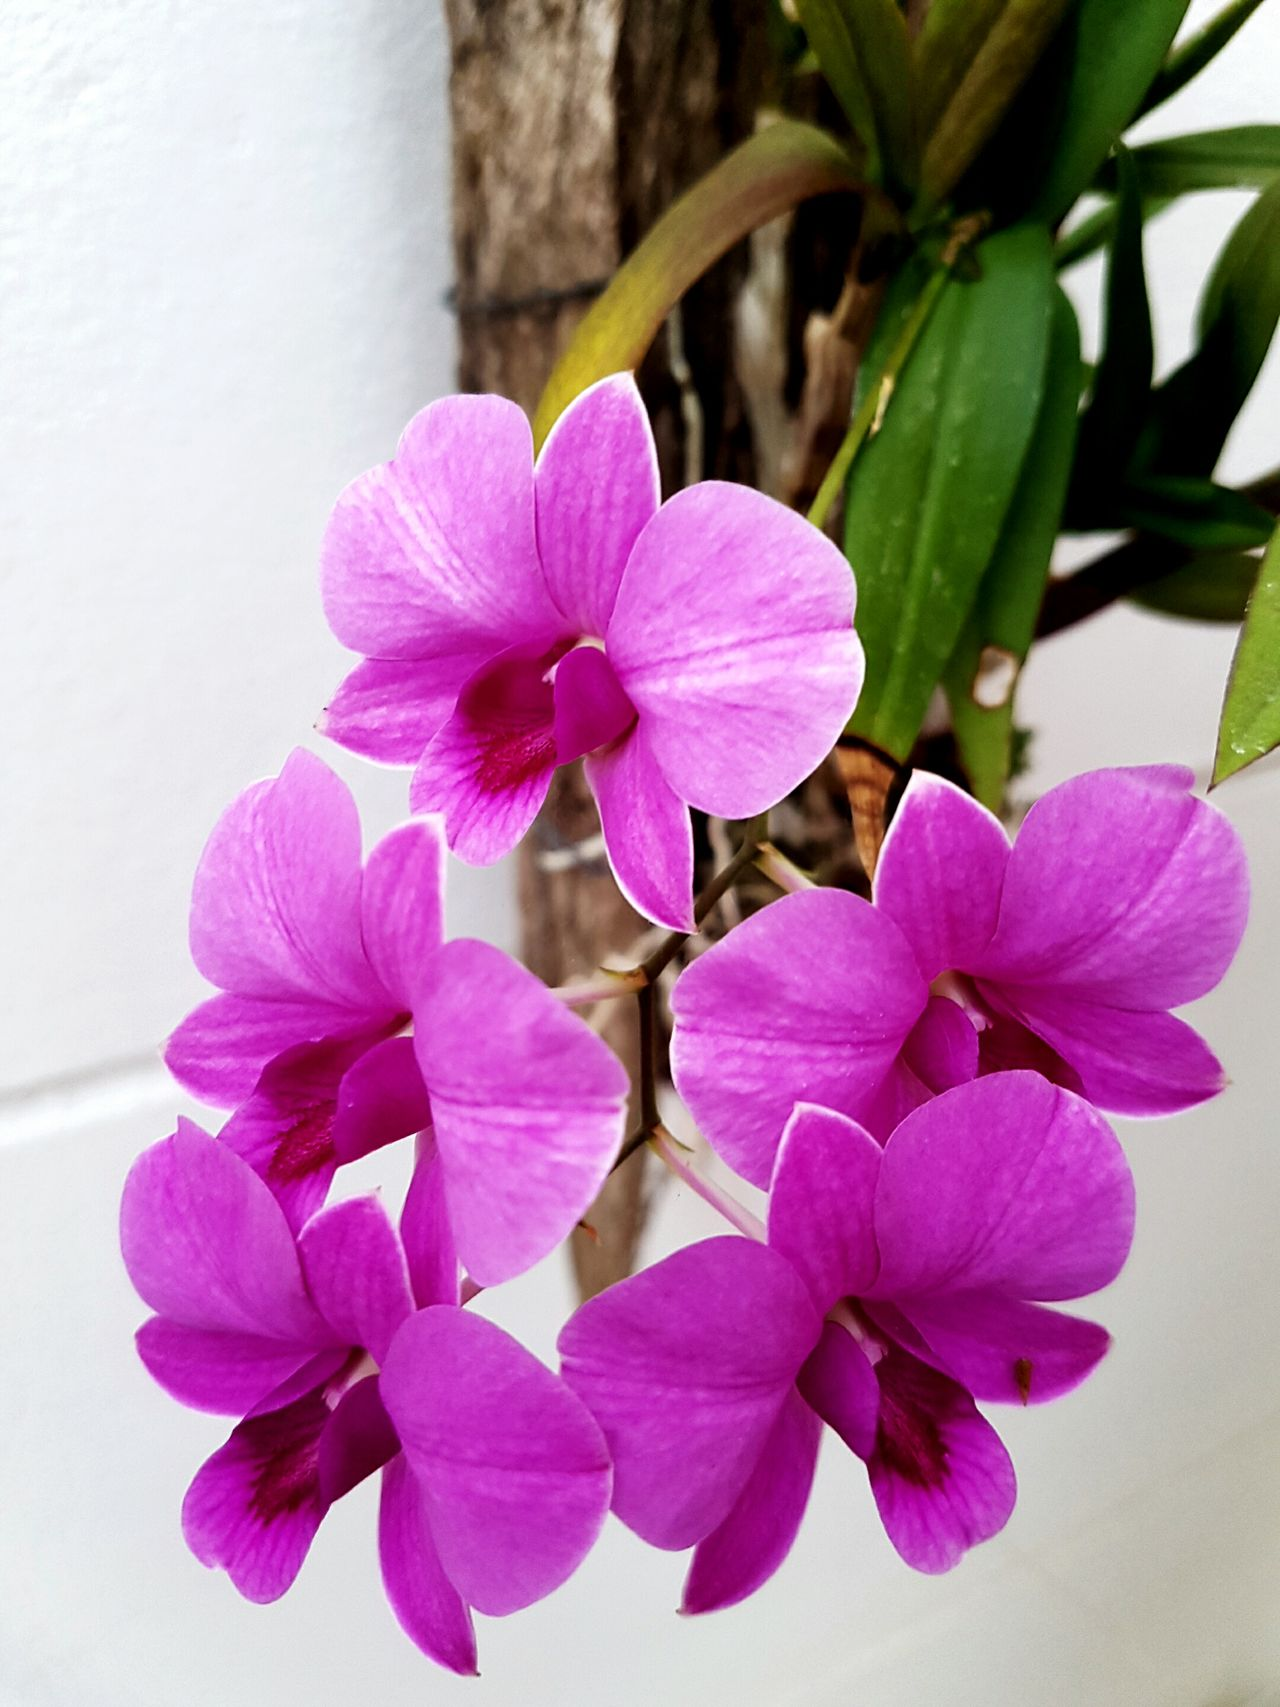 Flower Close-up Purple Beauty In Nature Flower Head In Bloom Orchid Blossoms Orchids In Bloom Orchids Collection Orchid Collection OrchidLover Orchid Flowers Flower Photography Flower Collection Flowers 🌸🌸🌸 Flowers, Nature And Beauty Blossom Beauty In Nature Enjoying The Moment Nature Makes Me Smile Nature Colors Capture The Moment